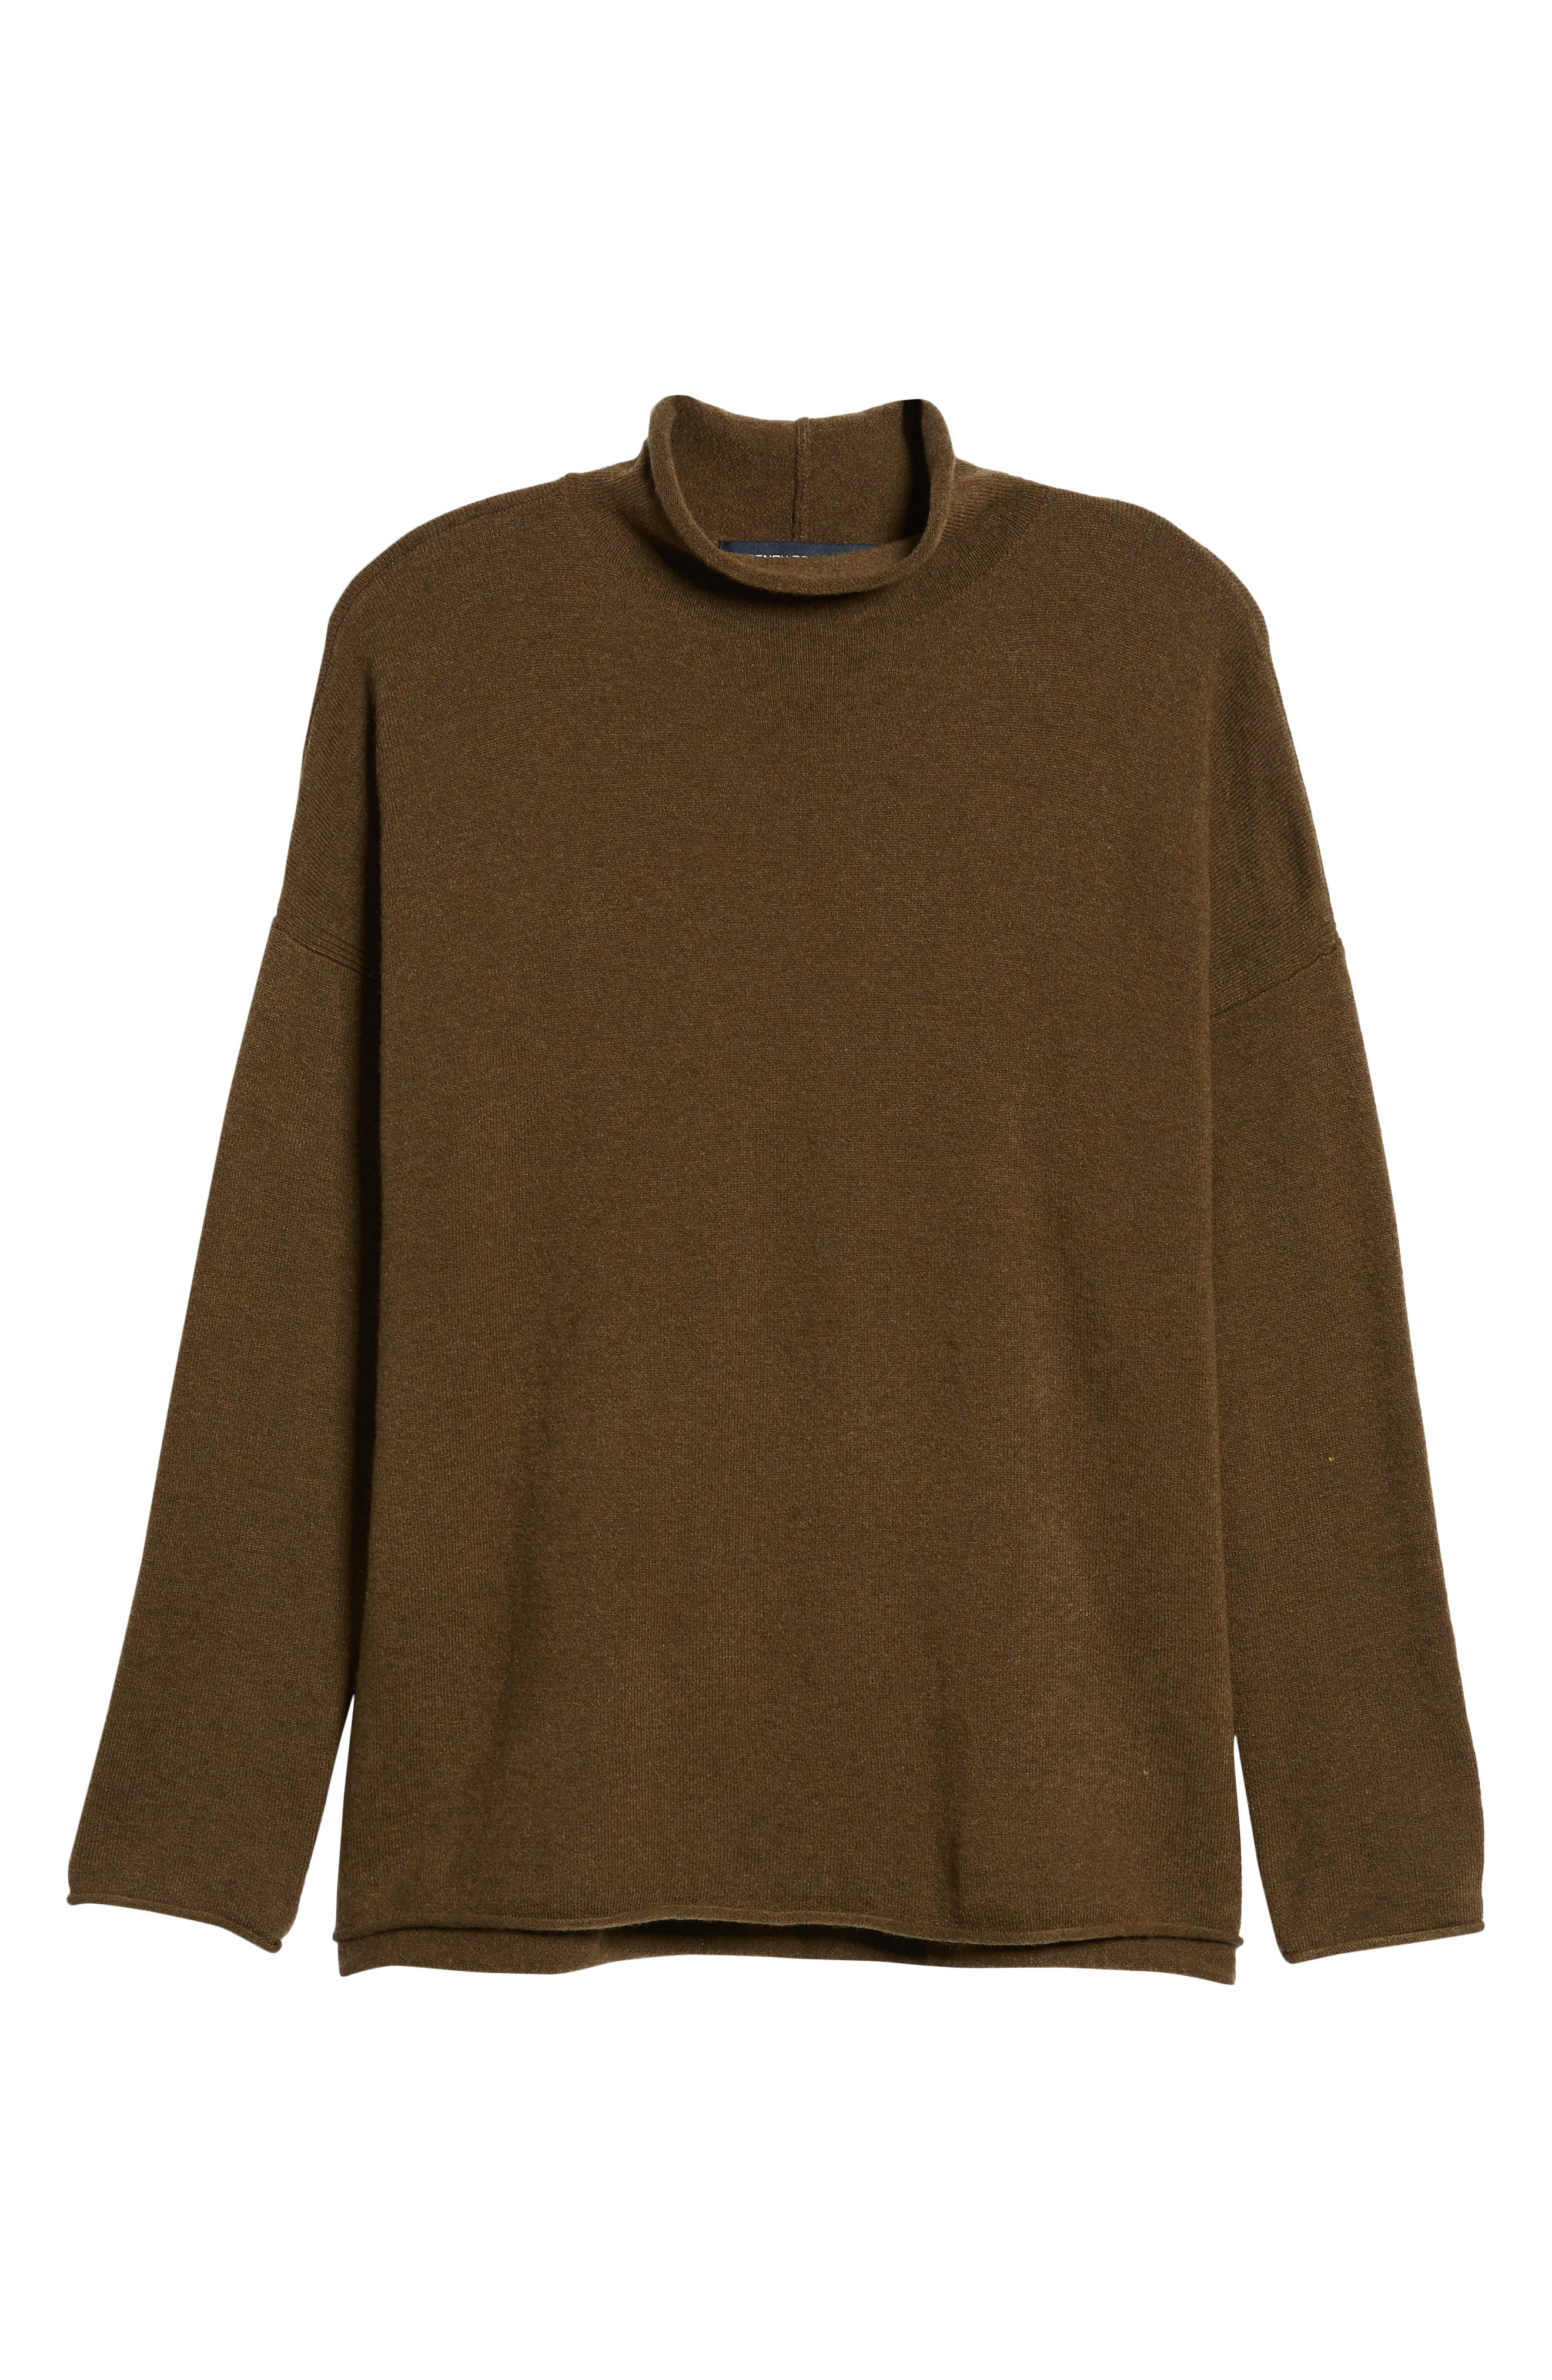 FRENCH CONNECTION,                             Ebba Sweater,                             Alternate thumbnail 6, color,                             312